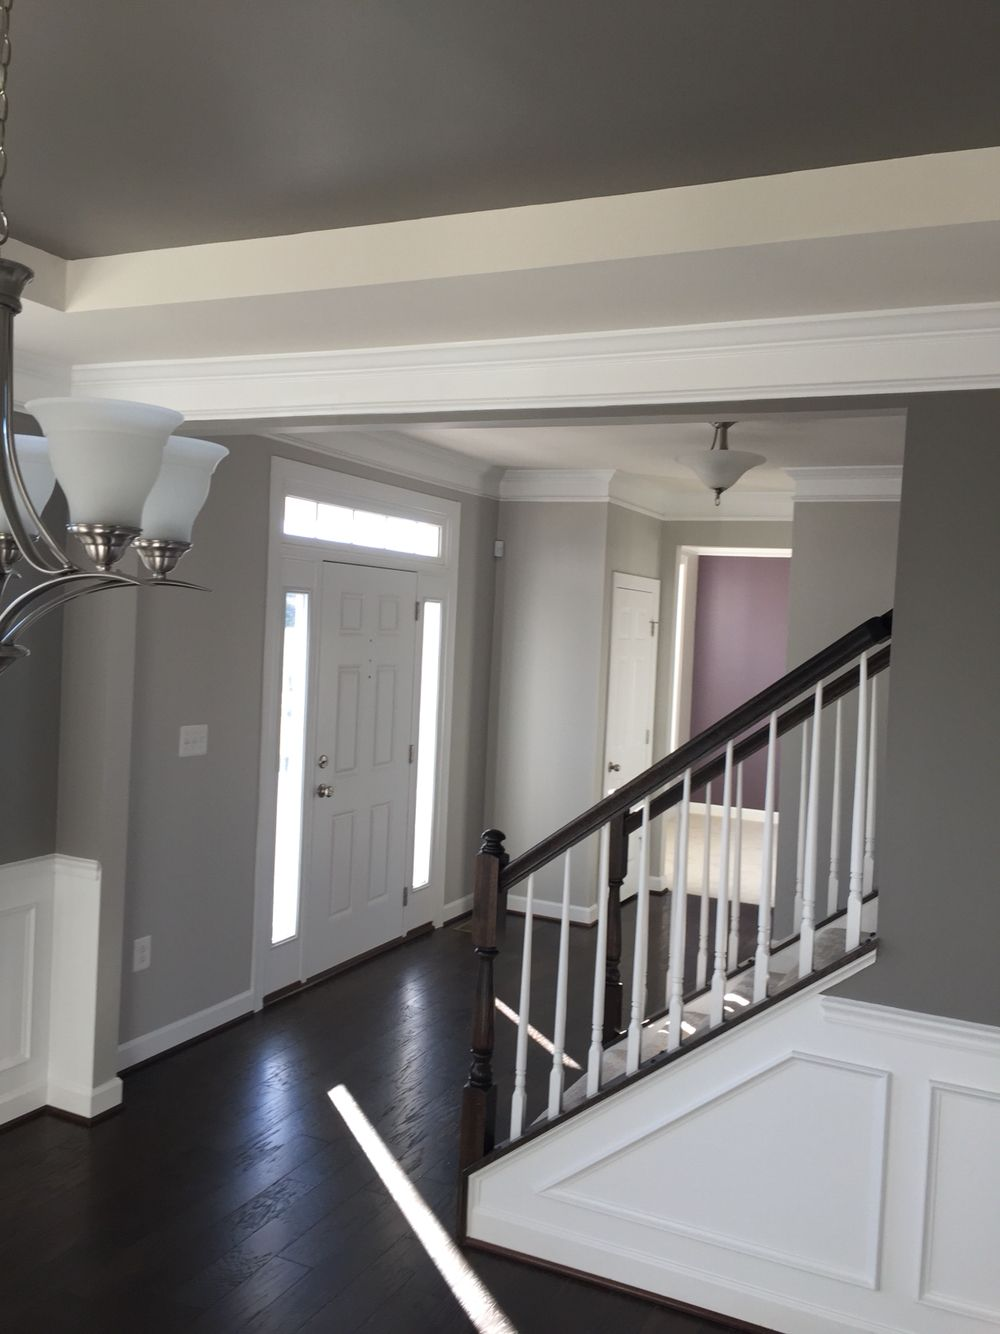 SW Repose Gray Entry Way Dovetail Dining Room And Ceiling